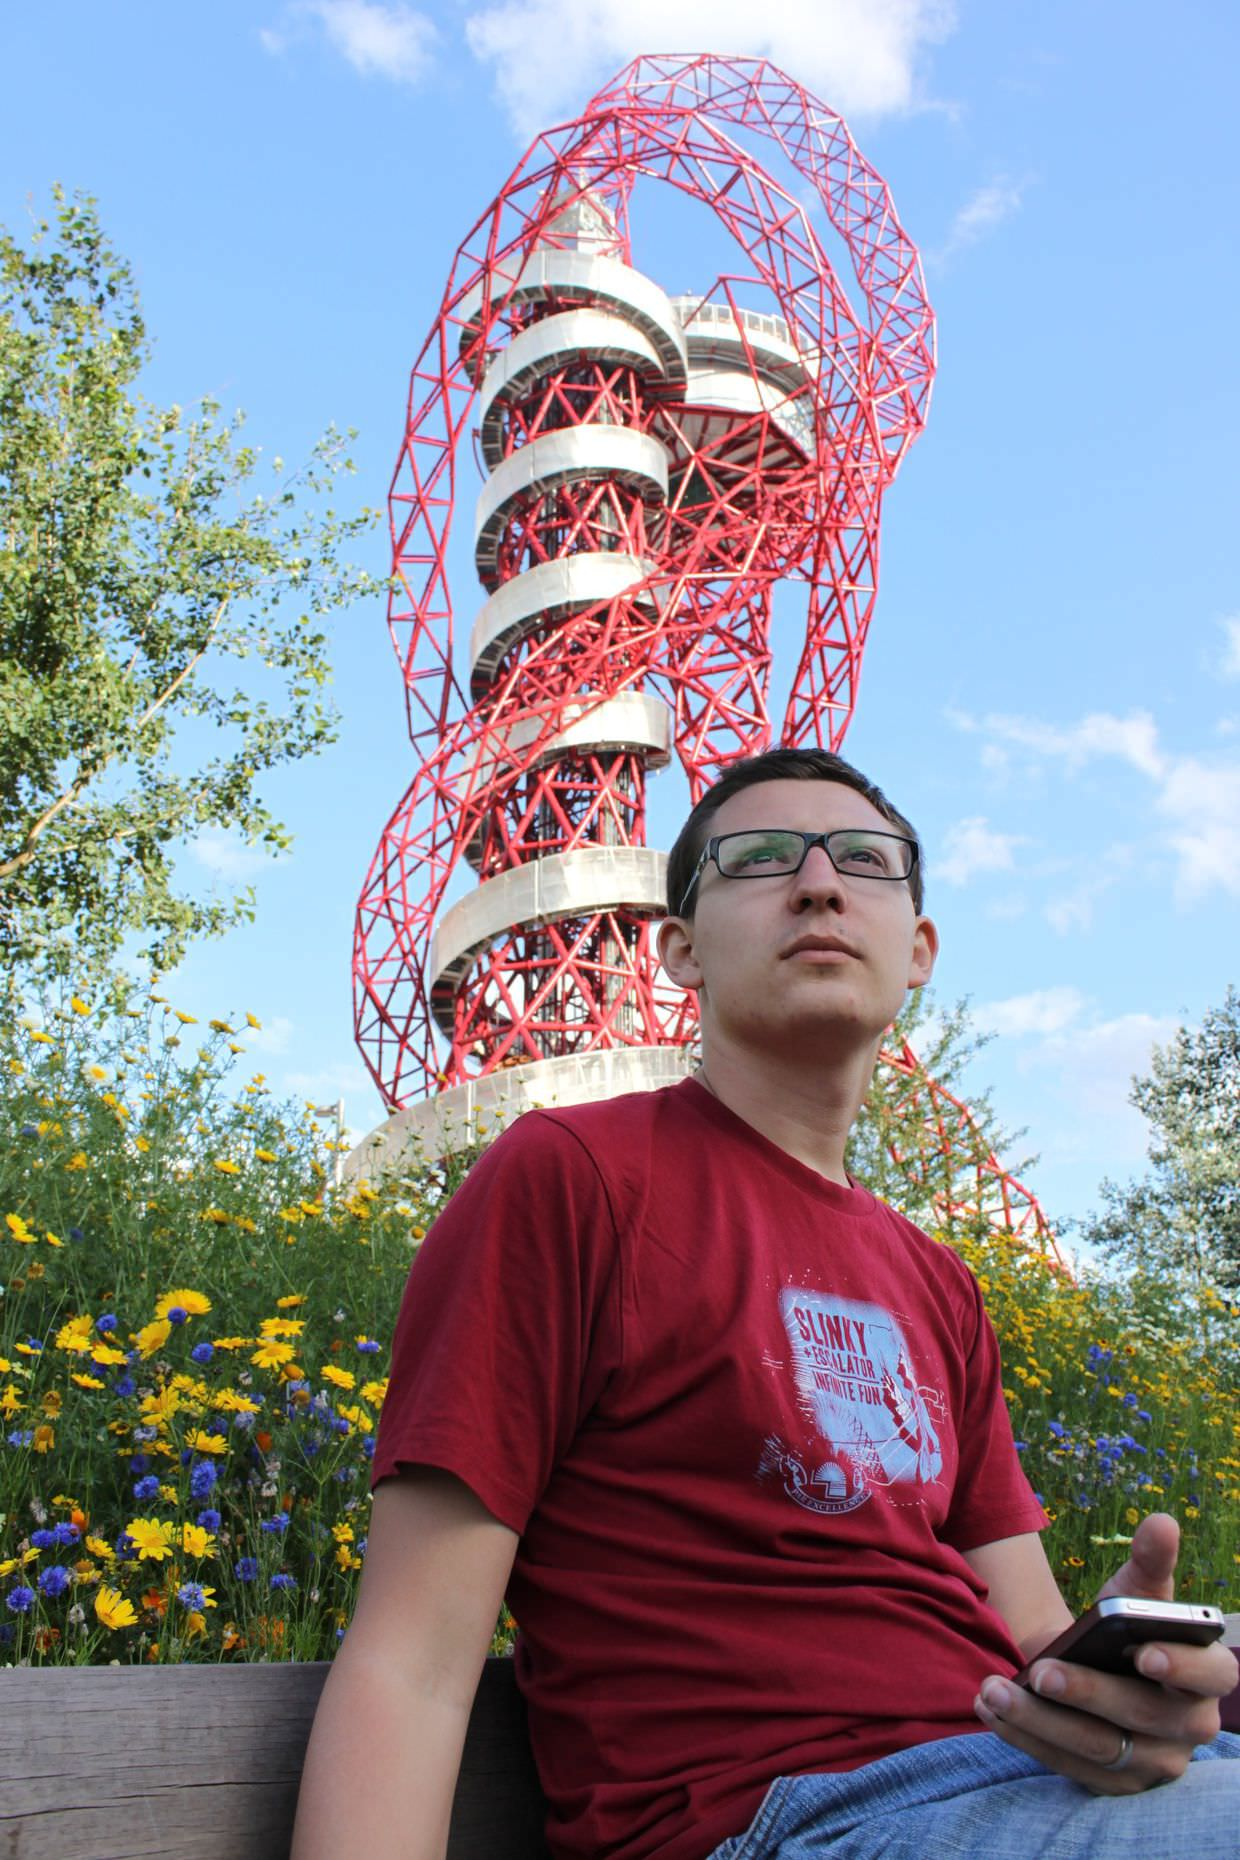 Paul and the orbit